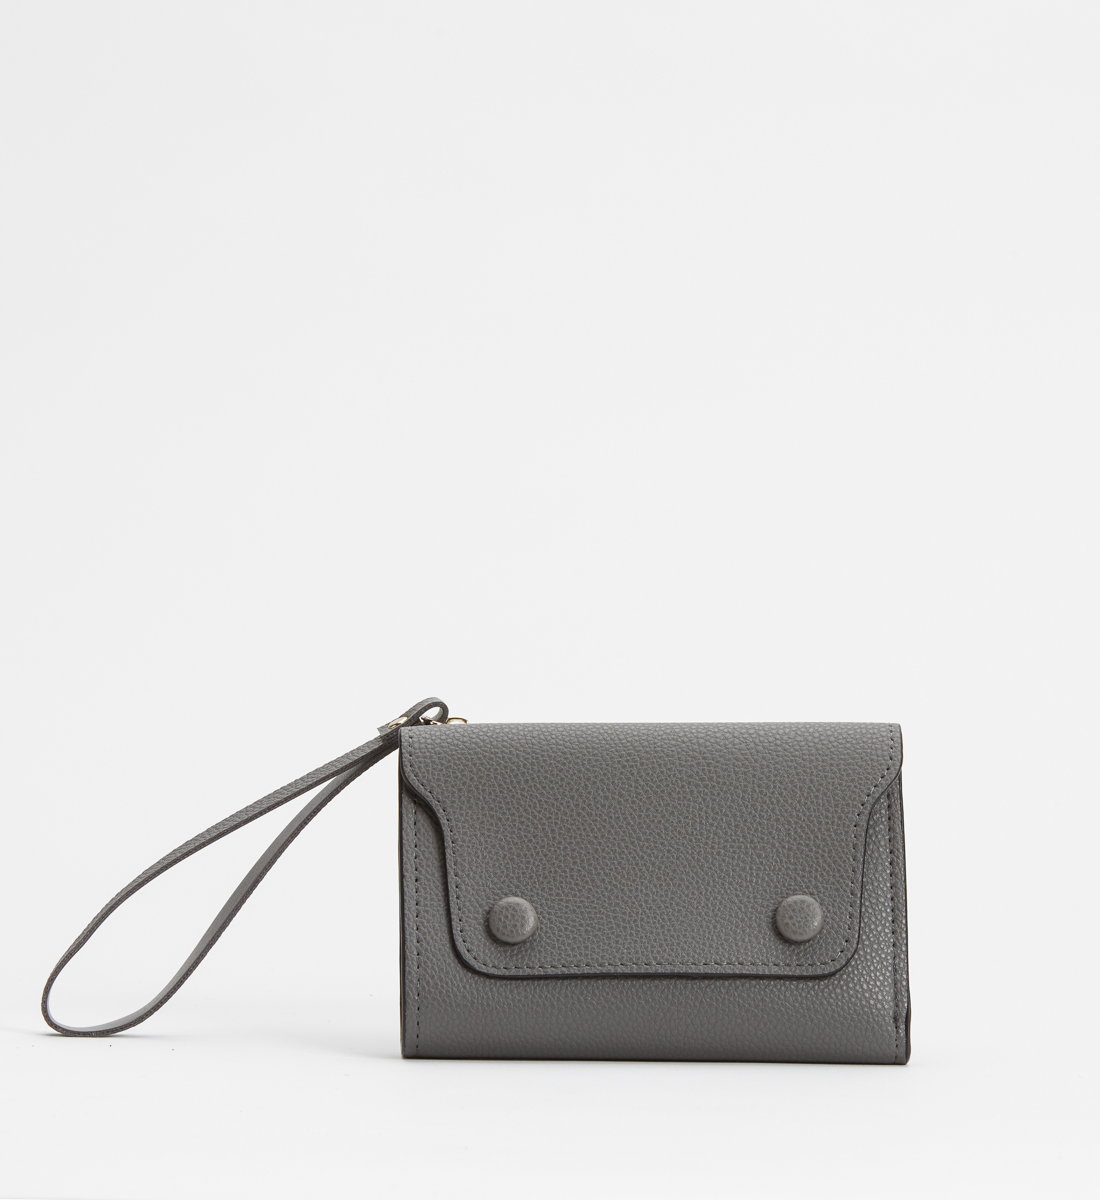 Small Flap Wristlet Wallet,Grey Front